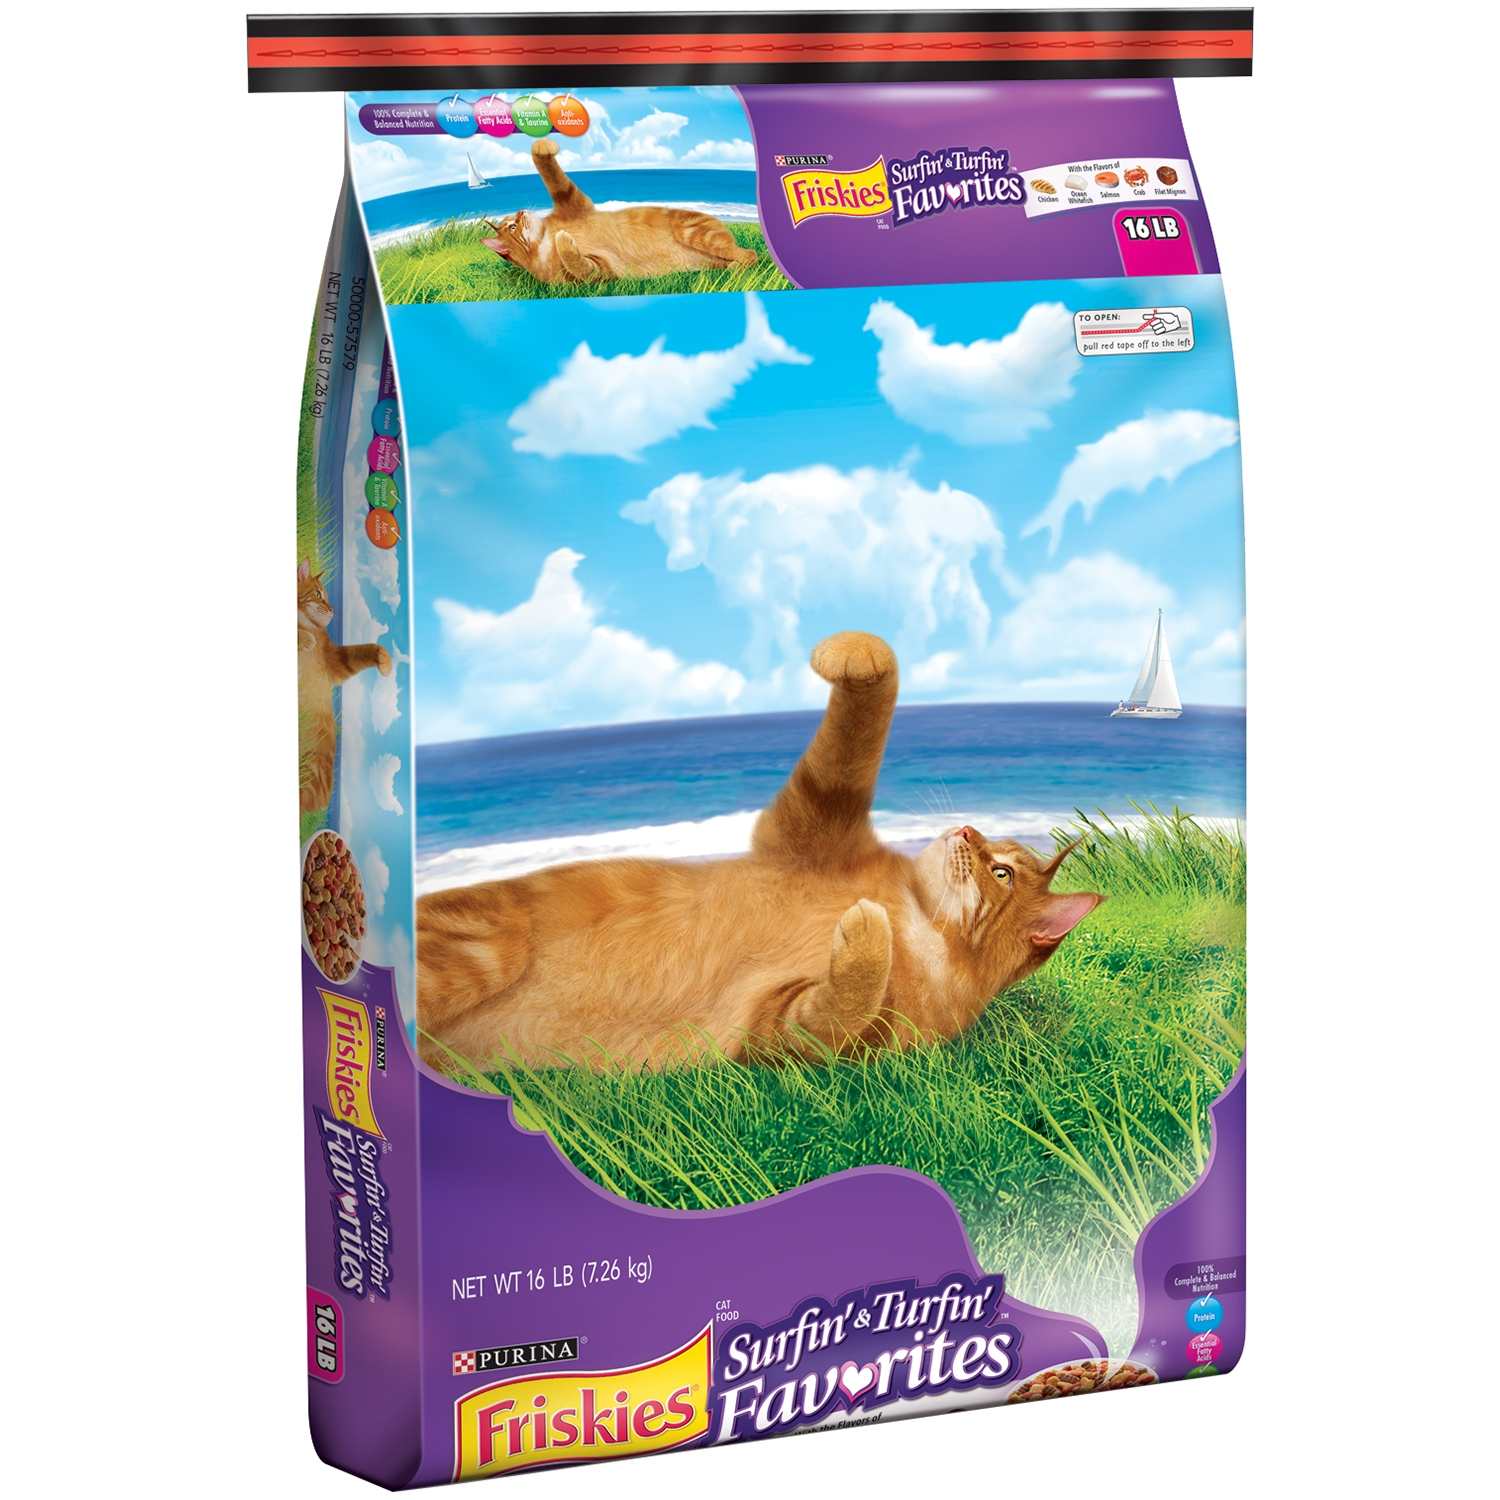 Purina Naturals Cat Food Recall